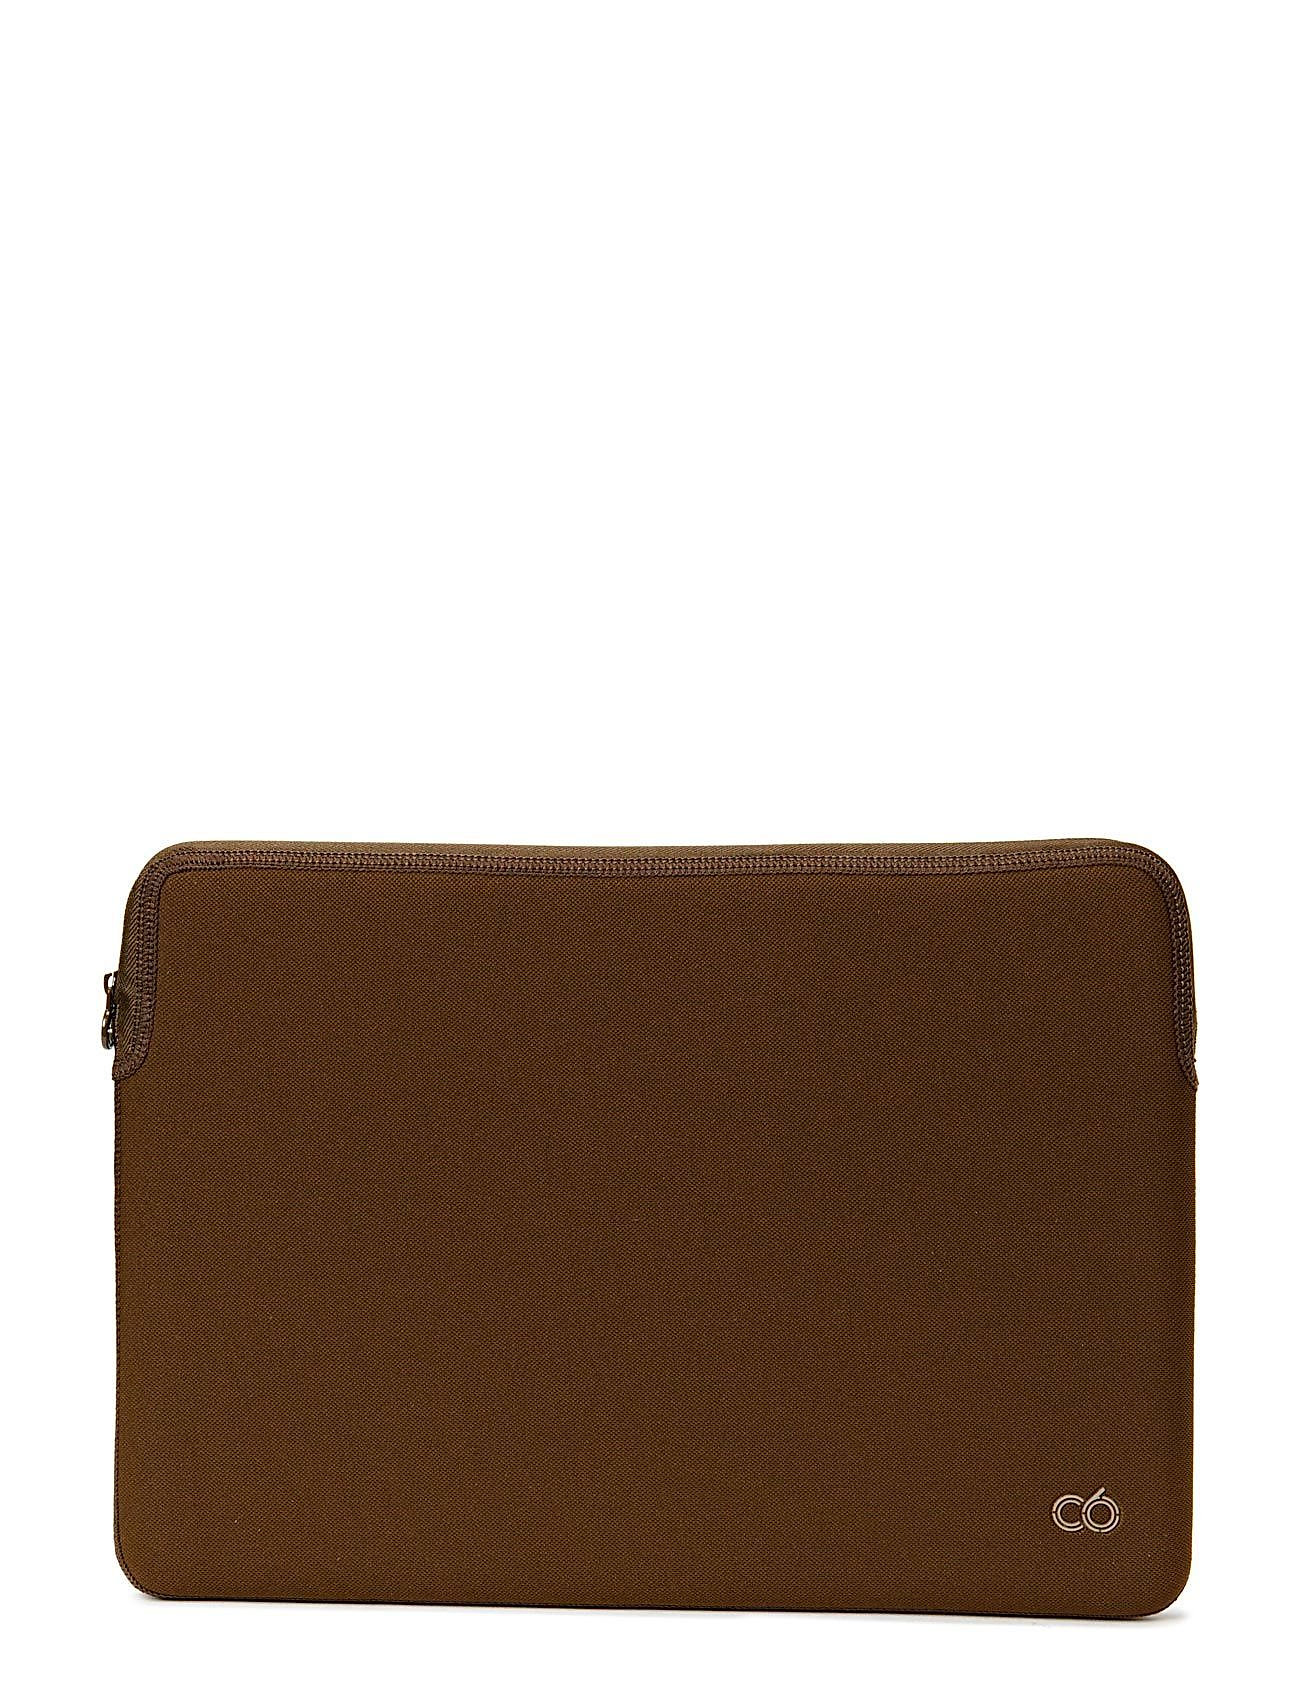 "C6 MICROFIBER ZIP SLEEVE MACBOOK AIR 11"" - OLIVE"